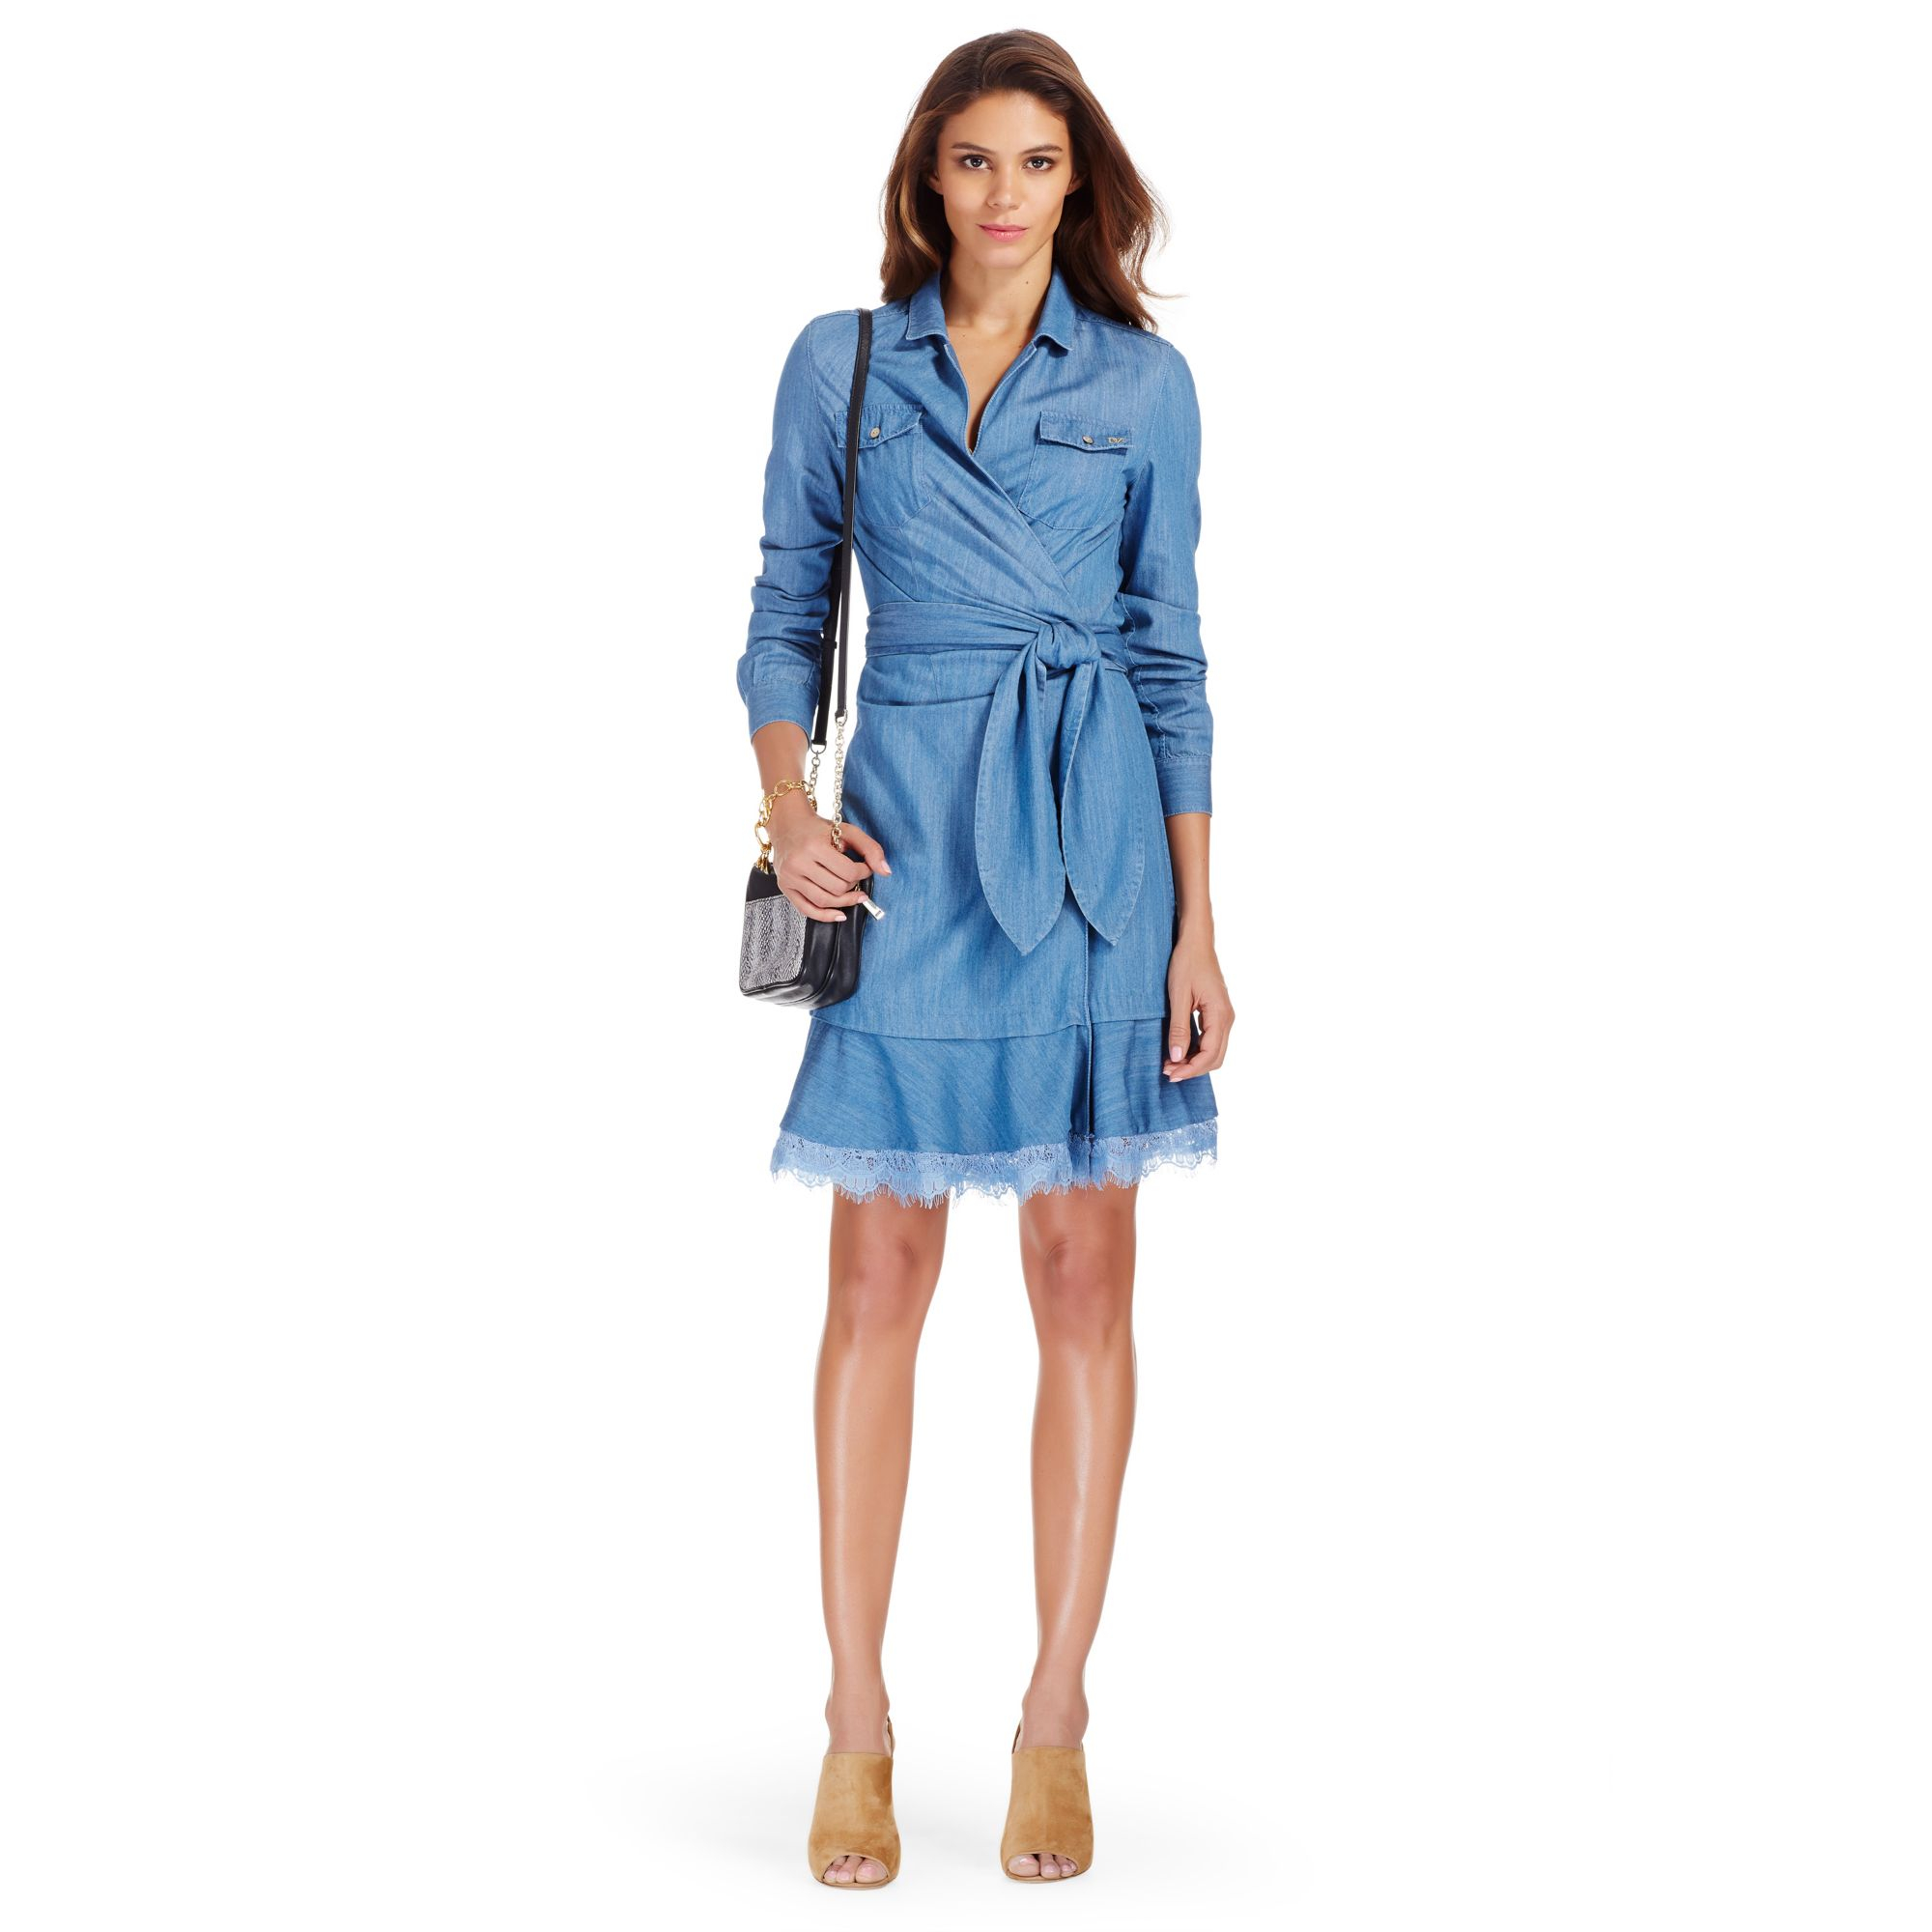 Diane von furstenberg dvf aya denim wrap dress in blue lyst for Diane von furstenberg clothes